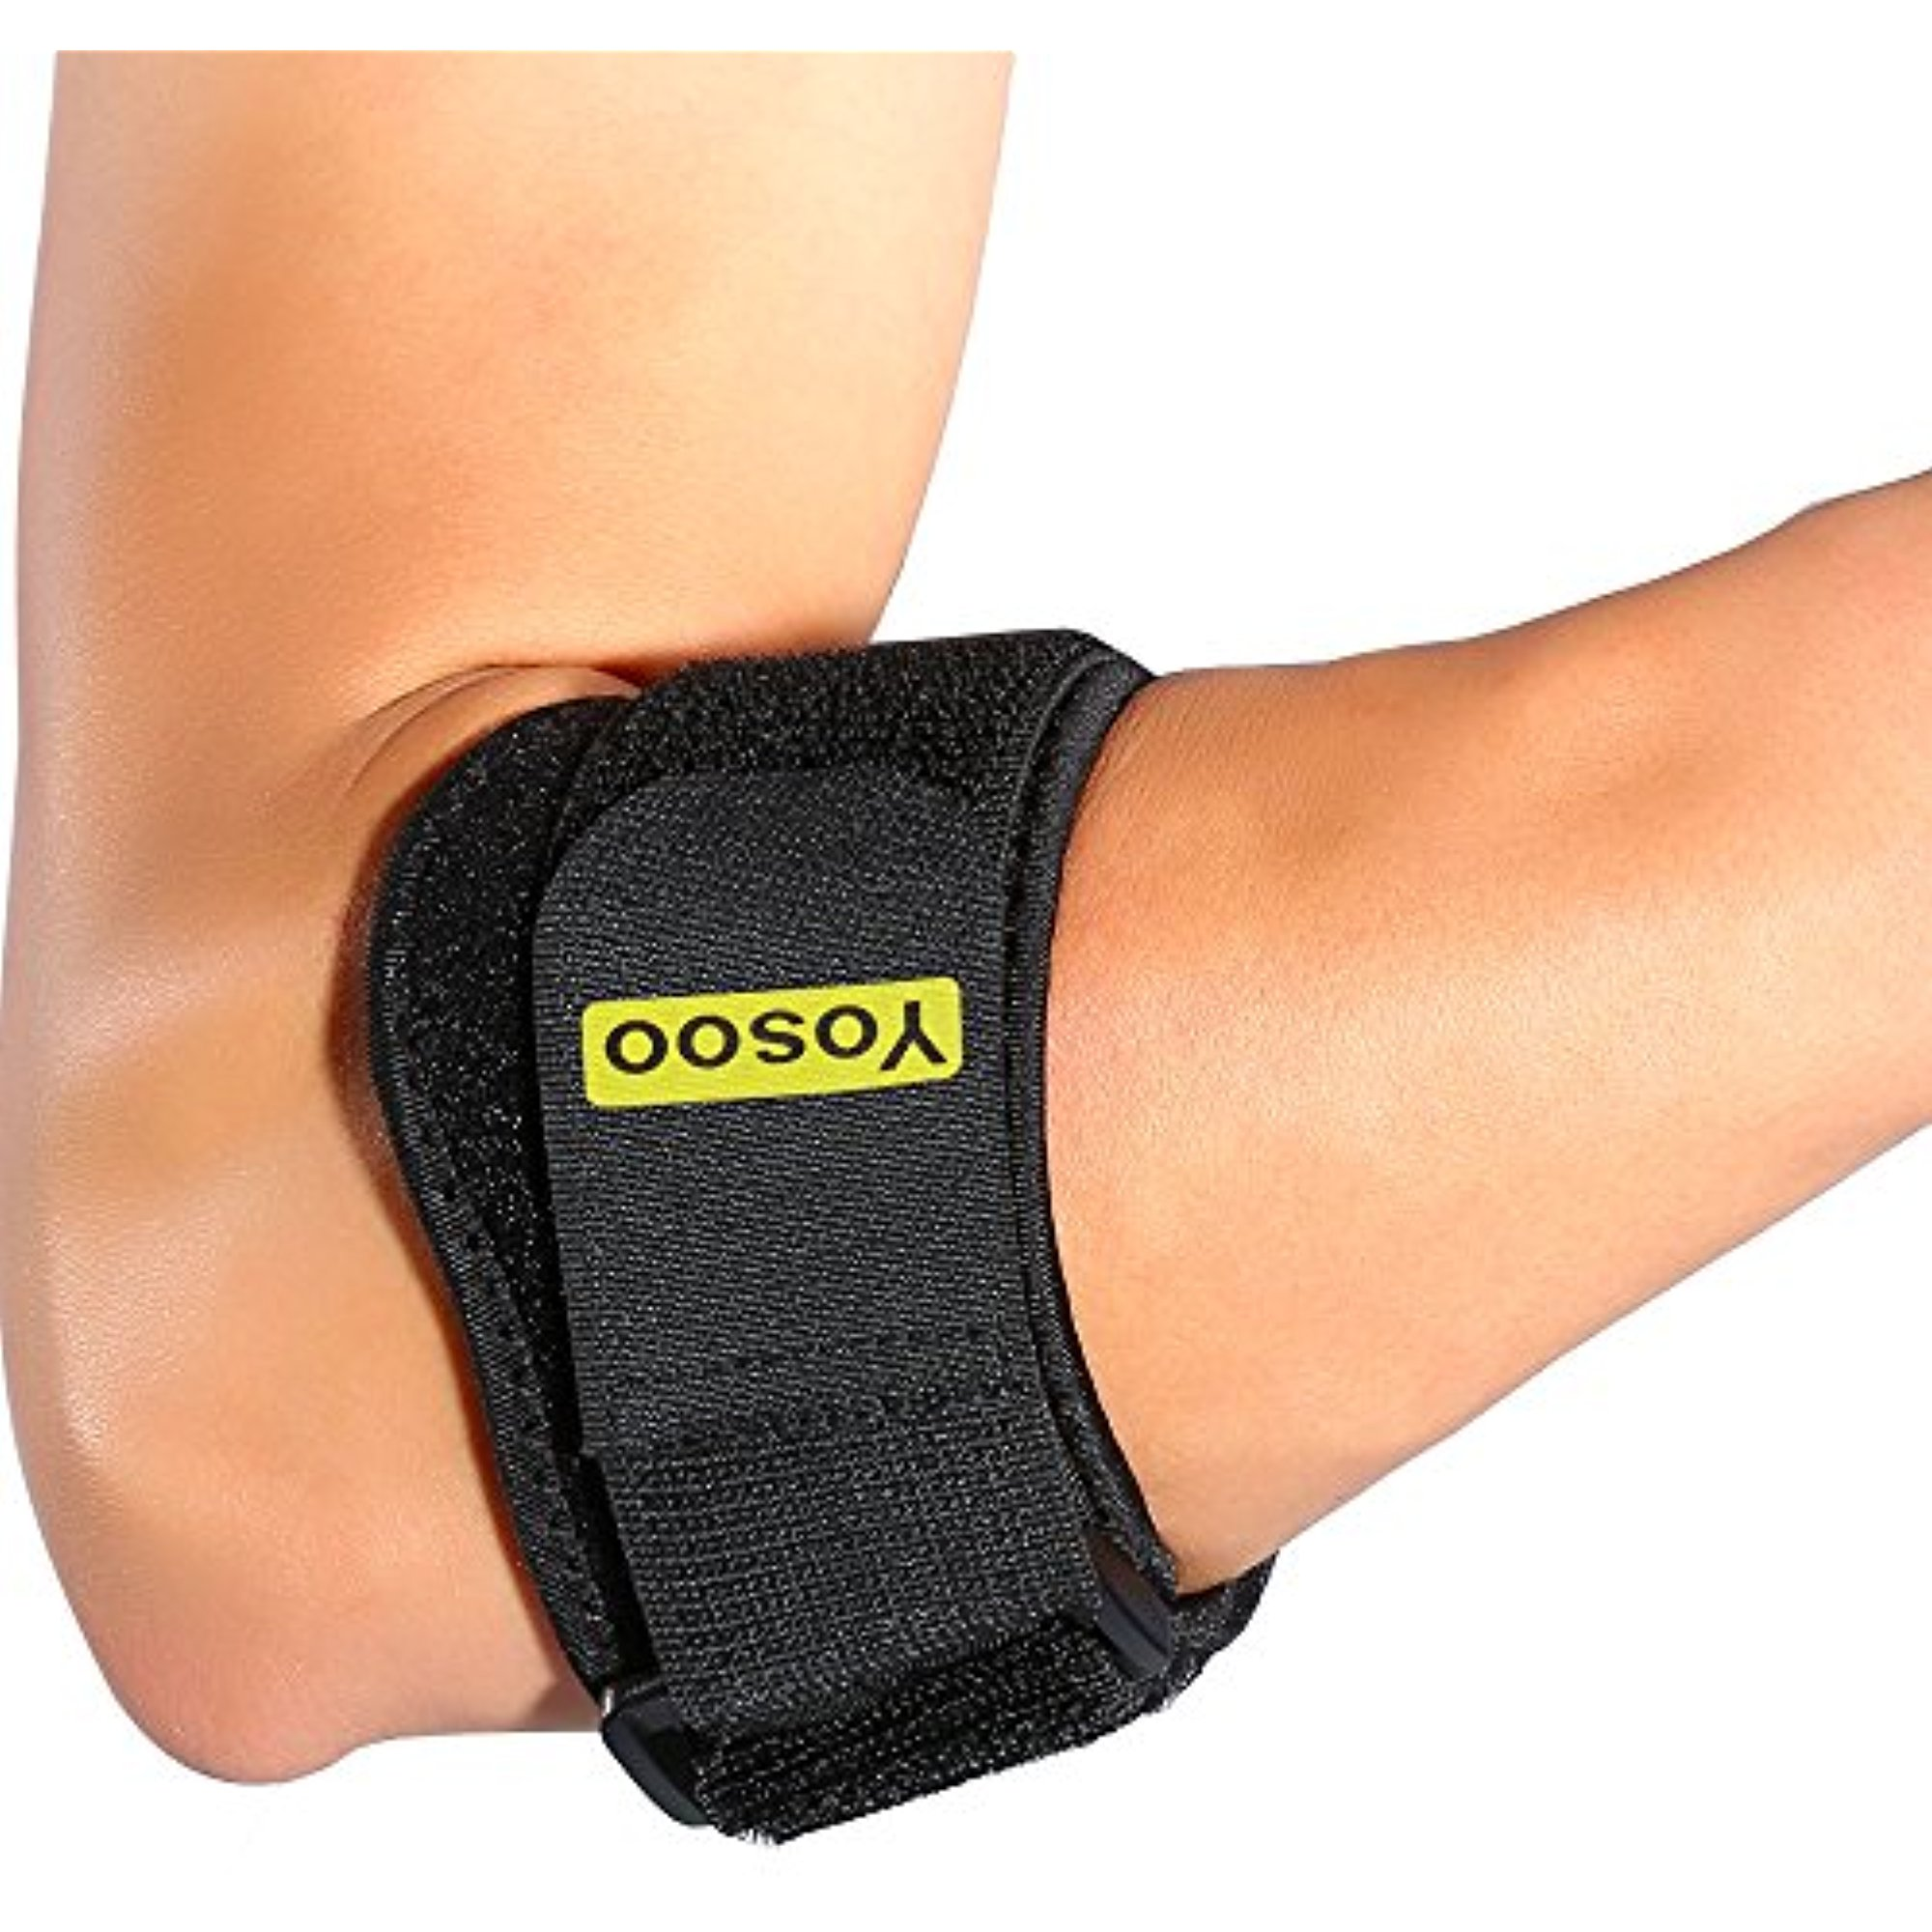 Yosoo Adjustable Arm Elbow Support Strap Band Wrap Counterforce Brace Good Protector Forearm Guard